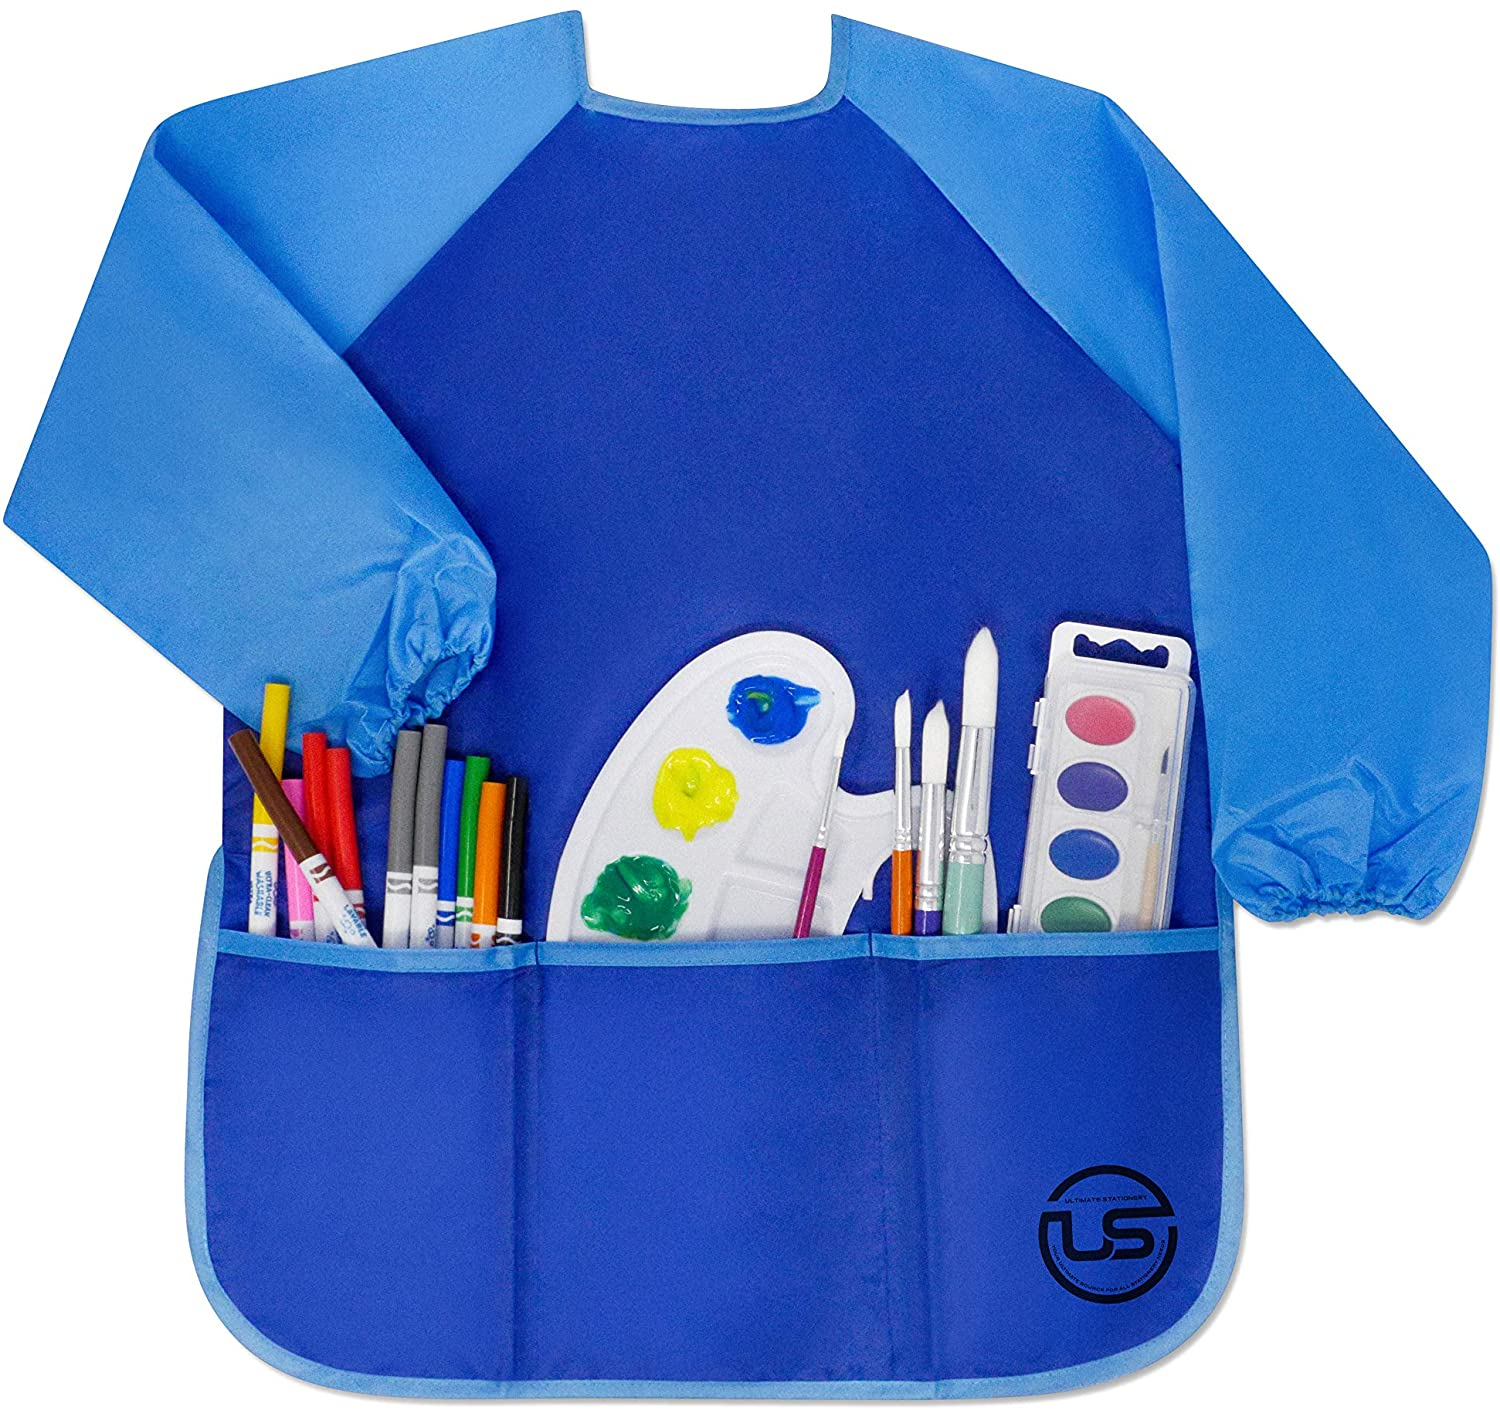 Waterproof Children Art Smock, Ultimate Stationery, Kids Long Sleeve Blue Apron with 3 Big Pockets Great for Painting, Gluing and Messy Crafts